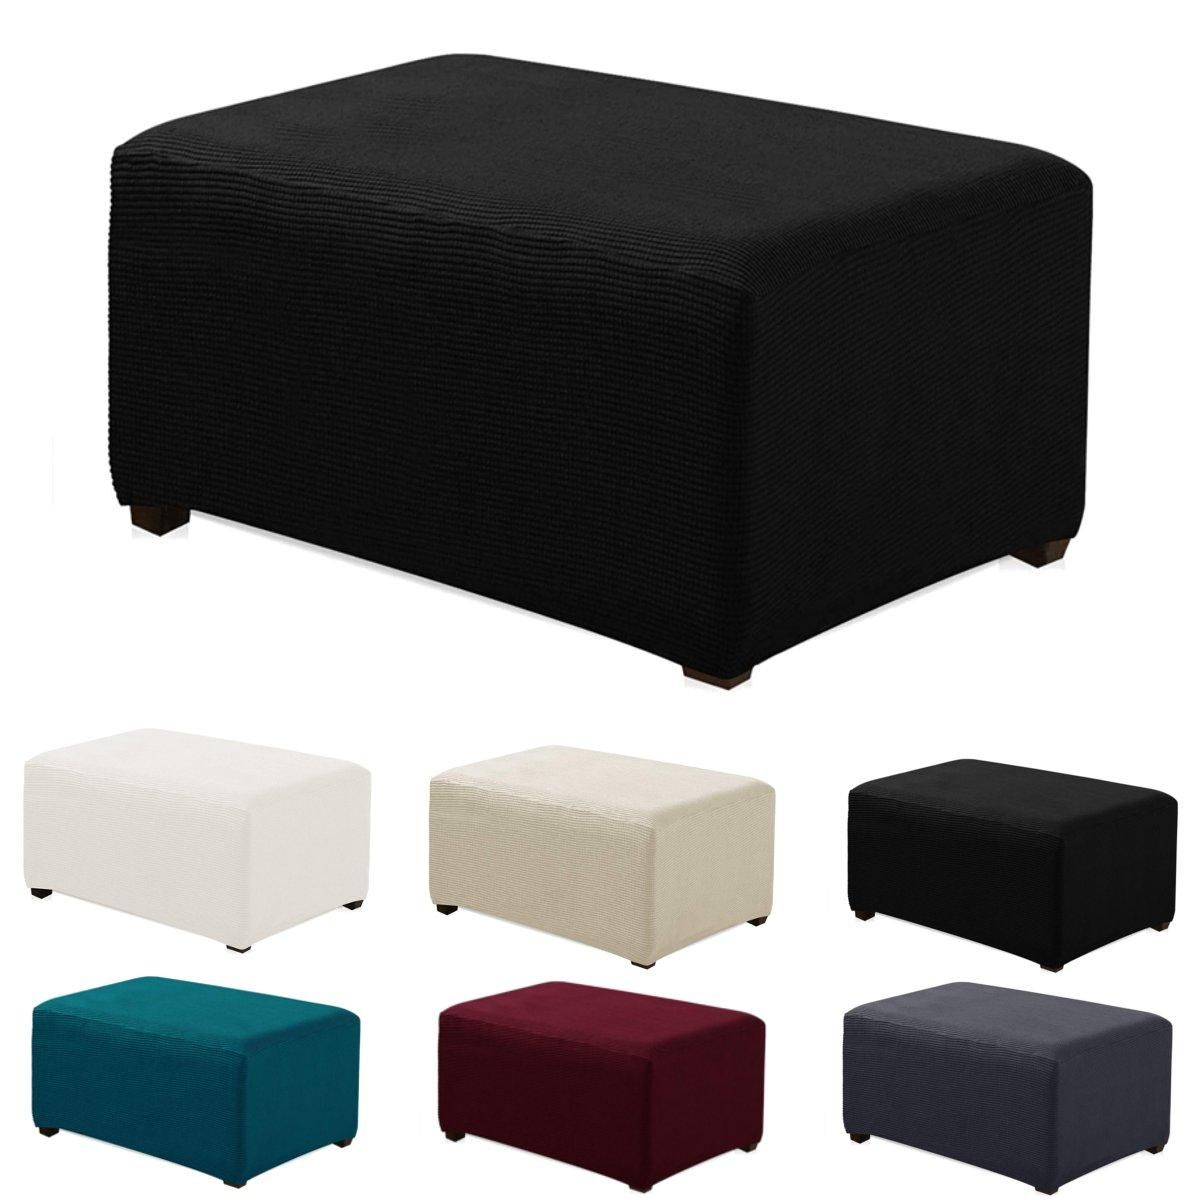 Stretchy Fabric Footstool Cover Square Ottoman Protector Stretch Slipcover For Home Sofa Furniture From Home And Garden On Banggood Com In 2020 Square Ottoman Slipcovers Ottoman Slipcover